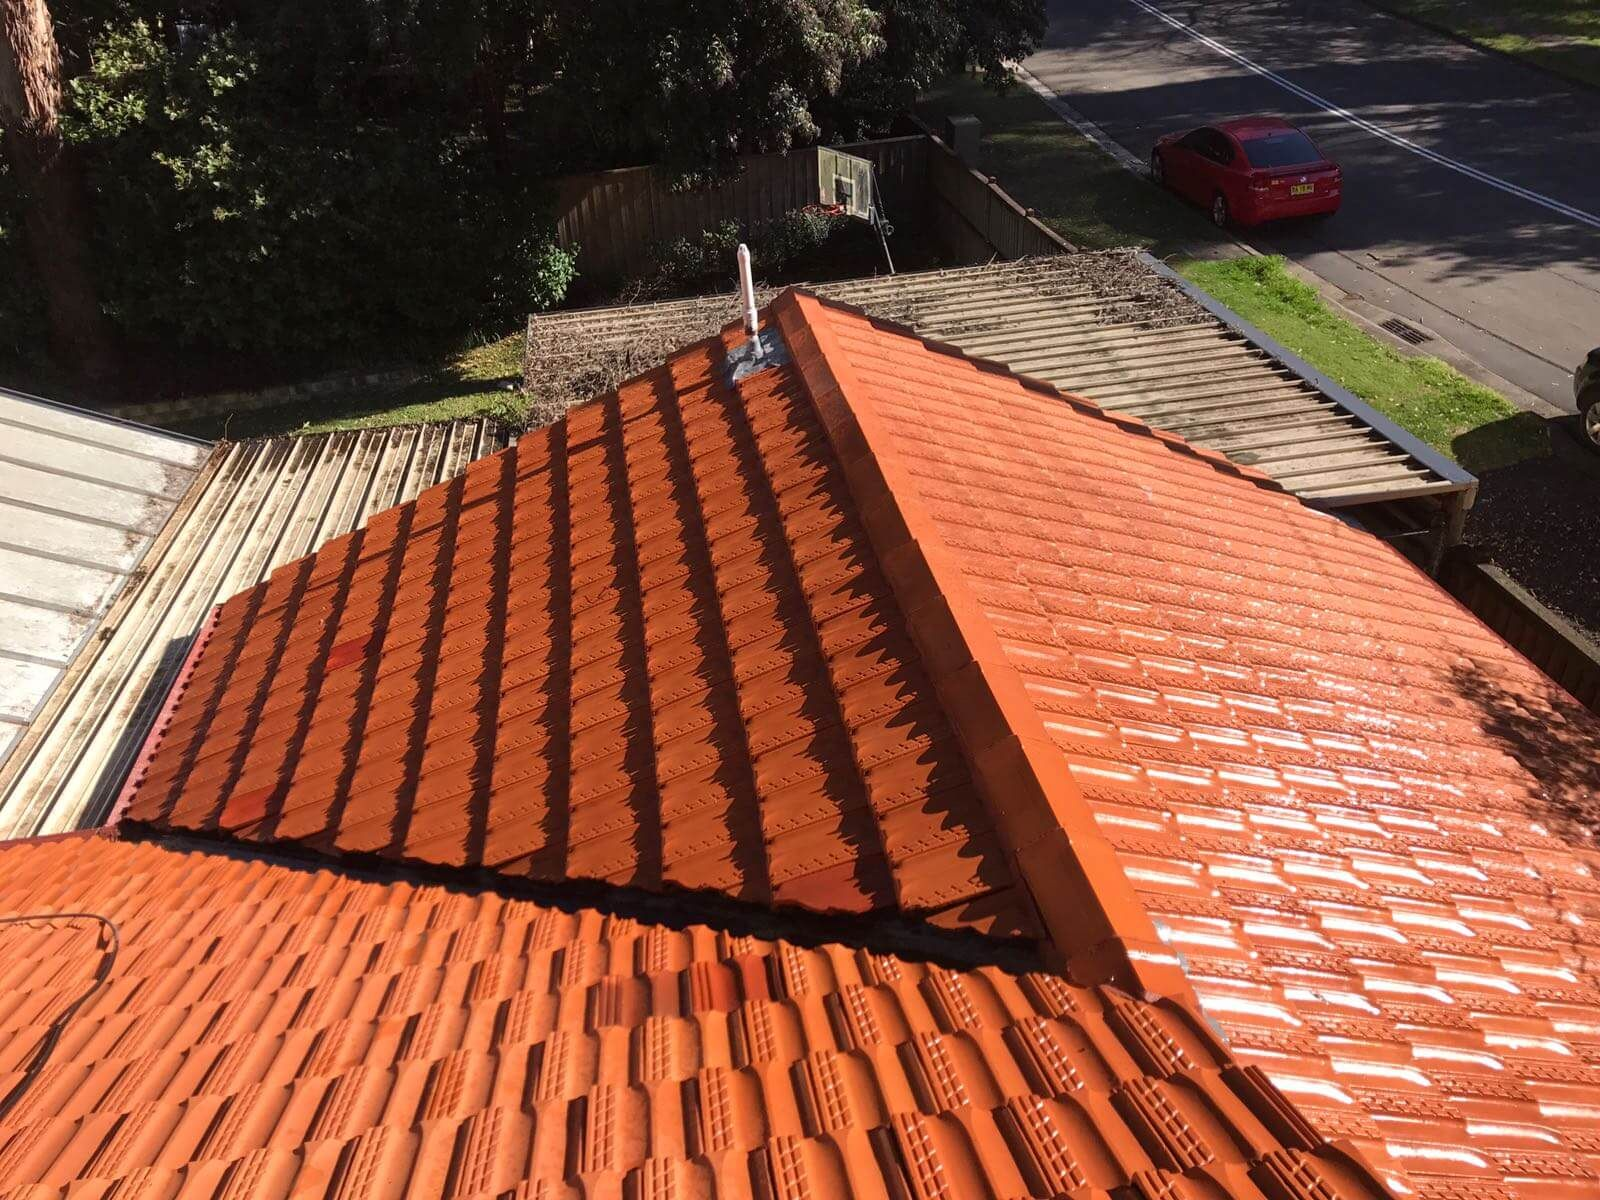 A Roofrestoration Sydney Needs For A Range Of Reasons It May Be Due To Leaks Before Winter Before Selling Their Home Or They Simply Want To In 2020 Roof Restoration